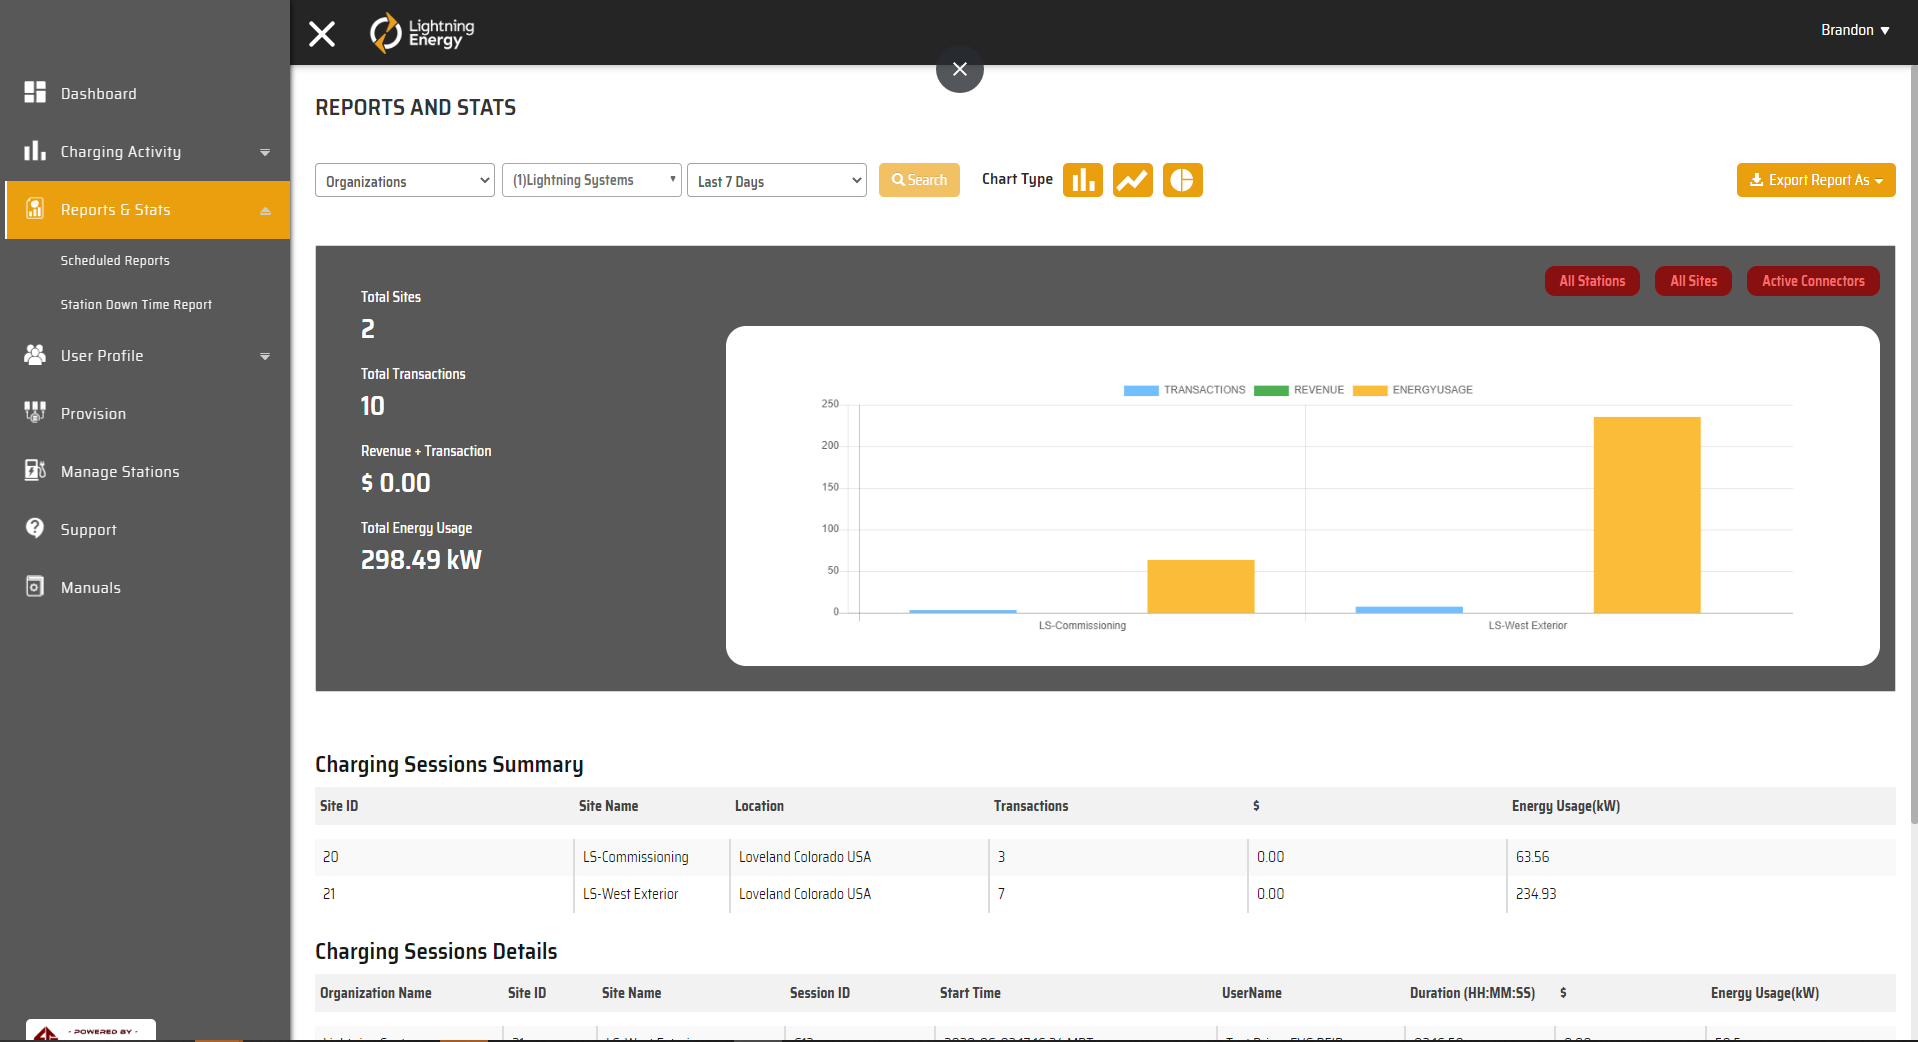 The Reports & Stats page shows energy usage, revenue generated (if applicable) and other metrics